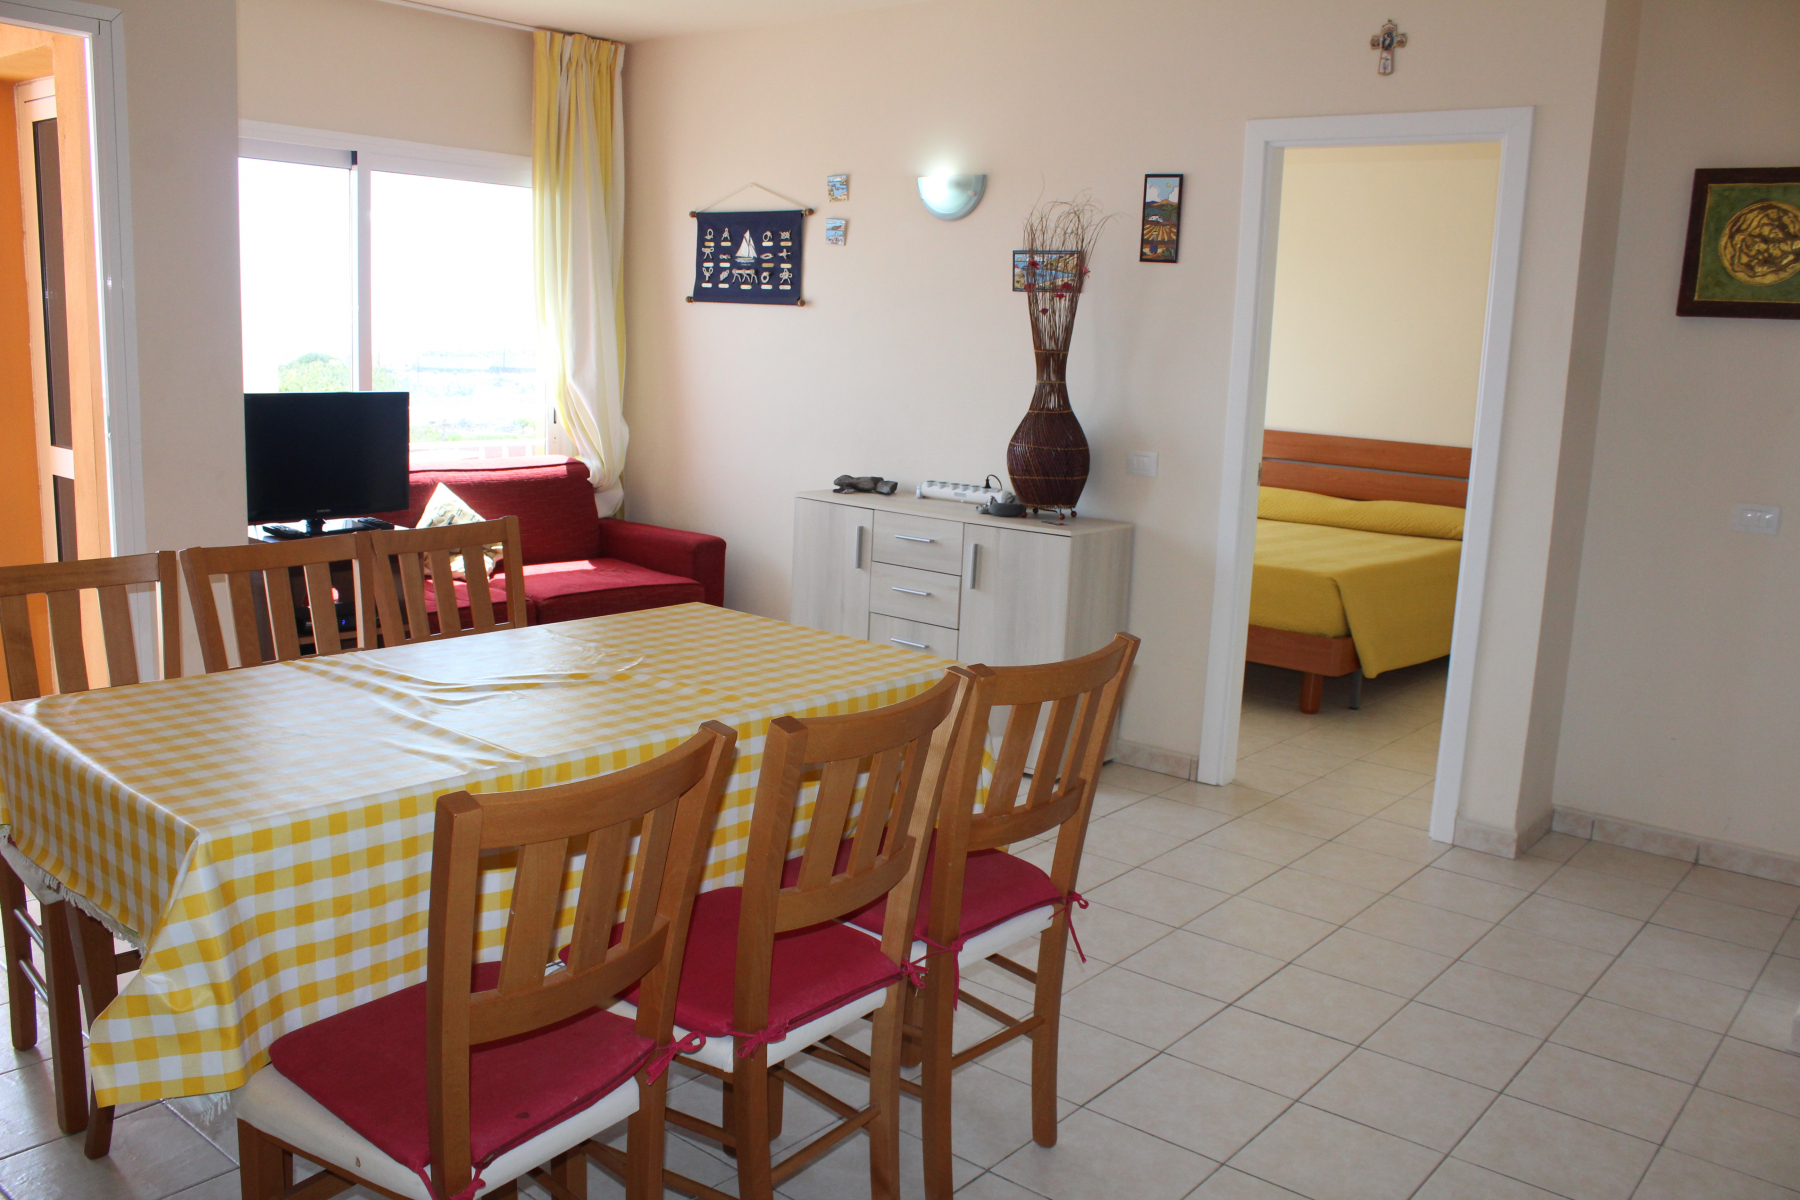 Properties for Sale in Tenerife, Canary Islands, Spain | SylkWayStar Real Estate. Apartment with 2 bedrooms in Callao Salvaje. Image-25724